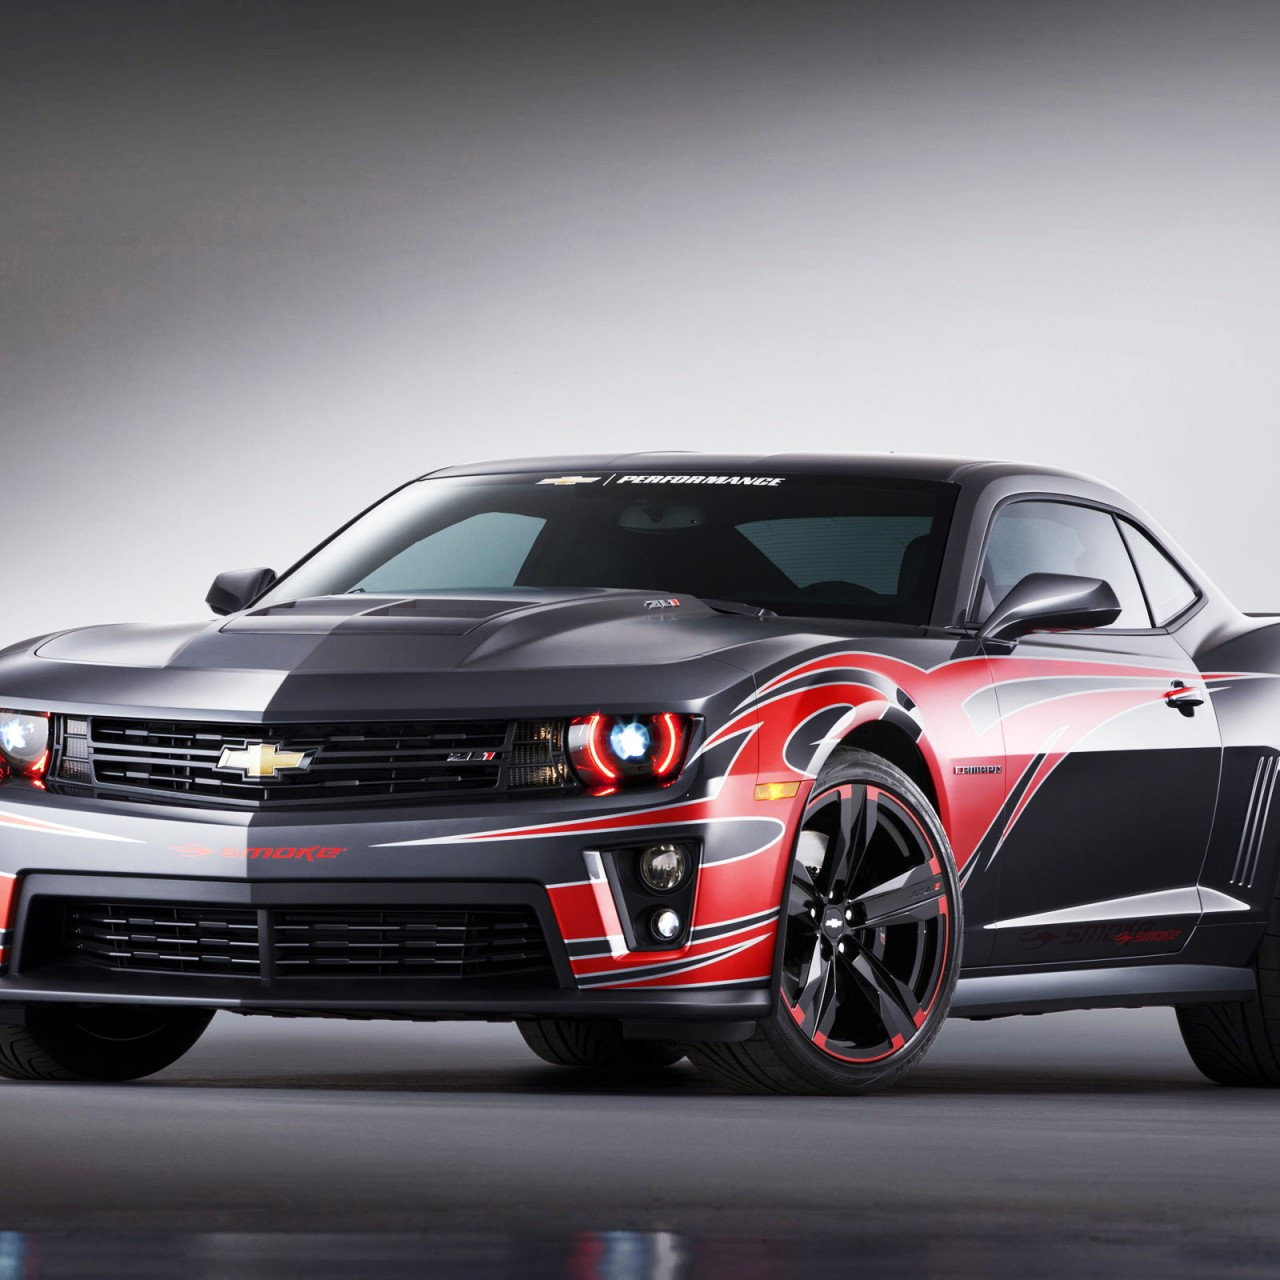 Chevy Muscle Car Wallpaper 6472 Hd Wallpapers in Cars   Imagescicom 1280x1280